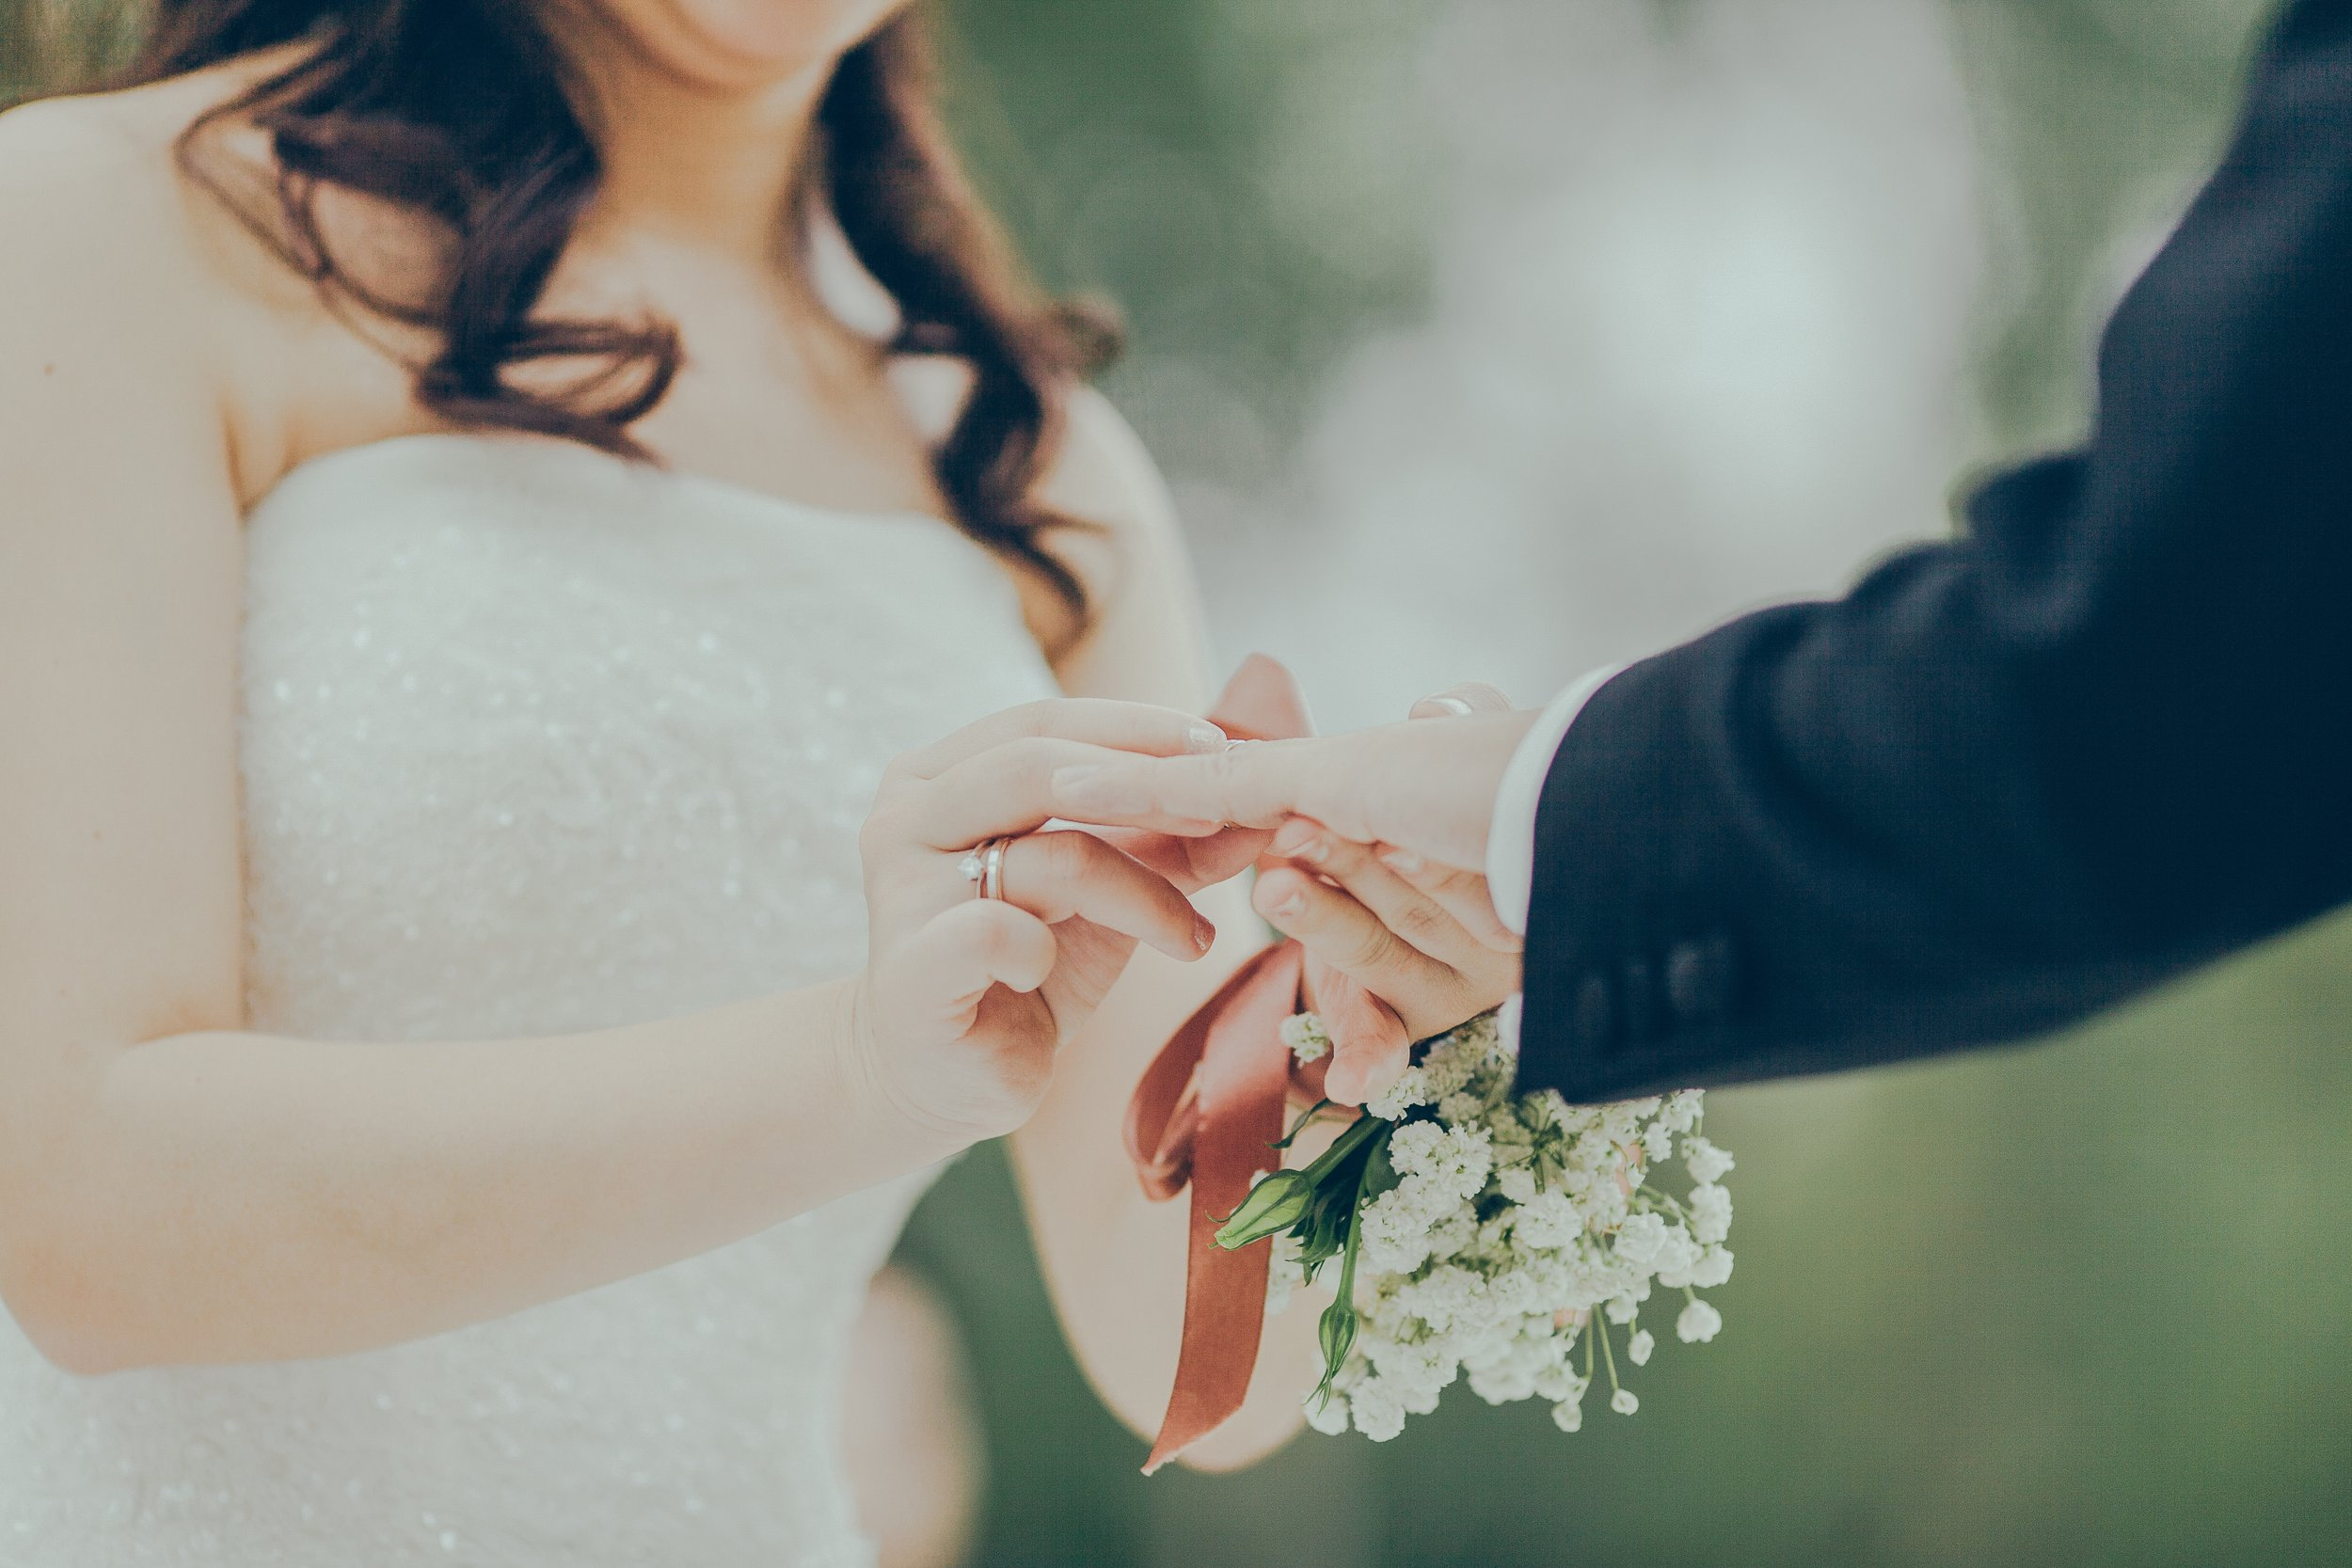 Plan Your Ceremony - To ensure your wedding ceremony goes smoothly, making proper arrangements for the ceremony and preparing as a couple are critical steps.